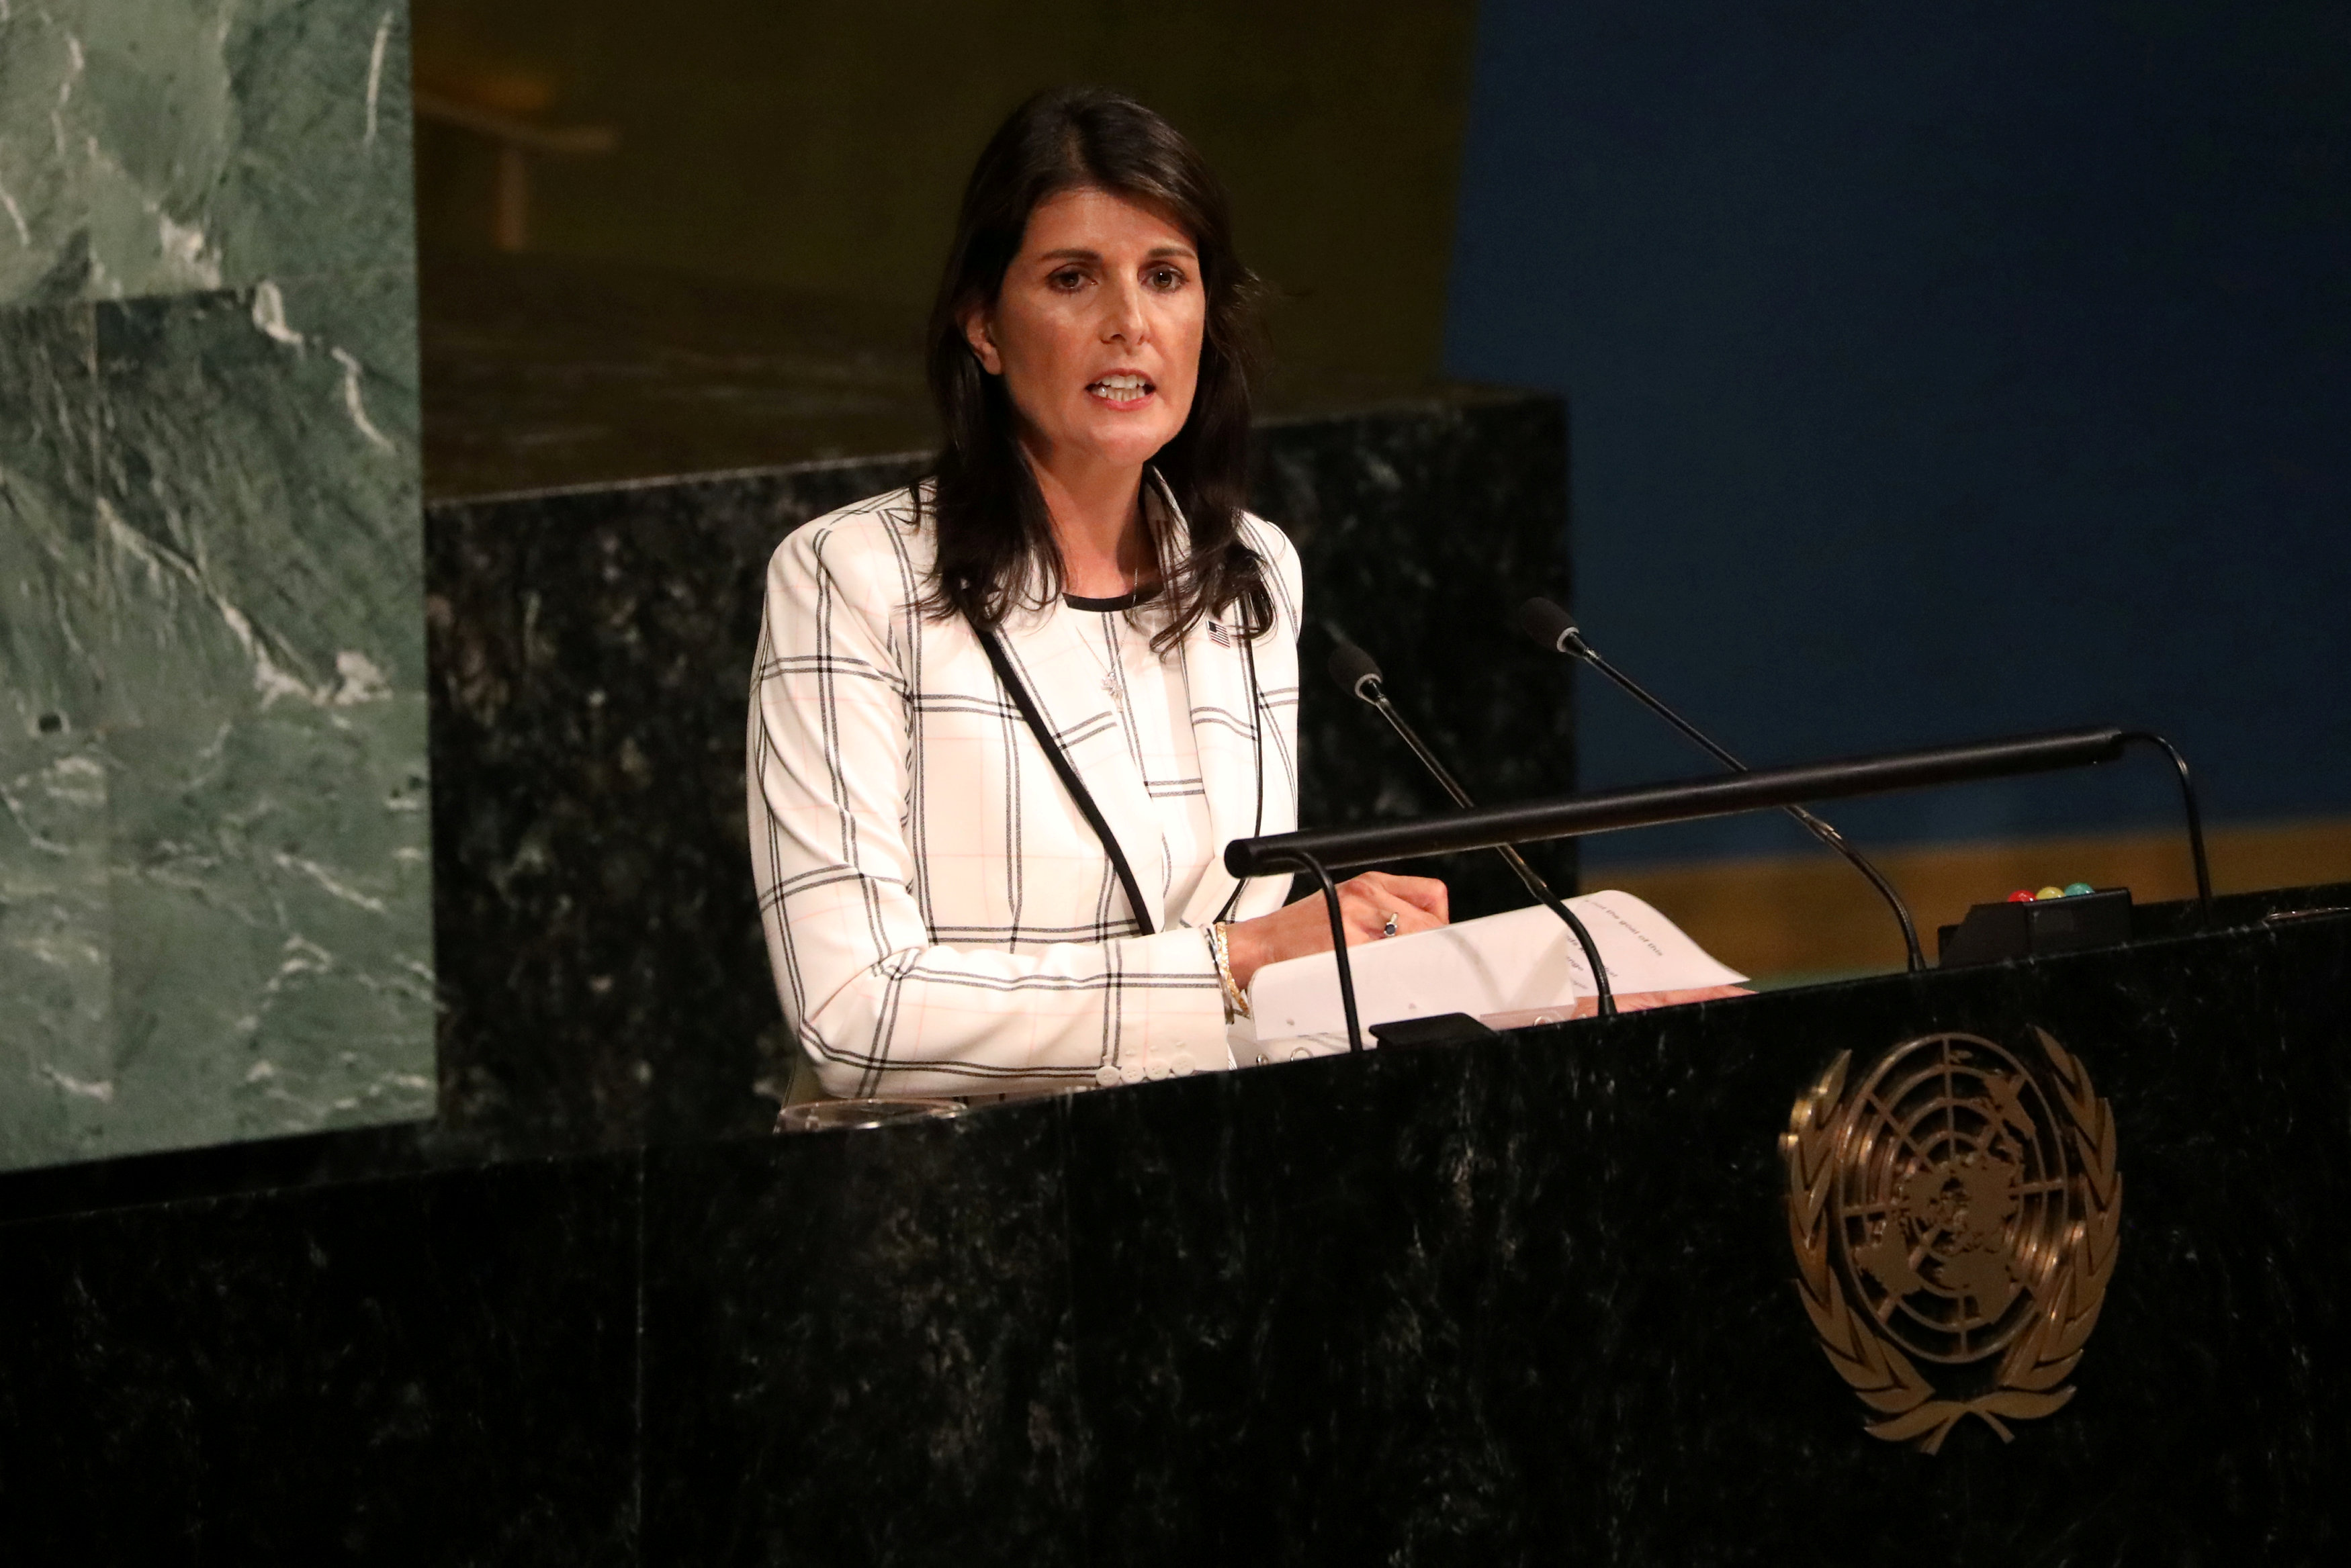 FILE PHOTO: U.S. Ambassador to the United Nations Nikki Haley addresses a United Nations General Assembly meeting ahead of a vote on a draft resolution that would deplore the use of excessive force by Israeli troops against Palestinian civilians at U.N. headquarters in New York, U.S., June 13, 2018. REUTERS/Mike Segar/File Photo